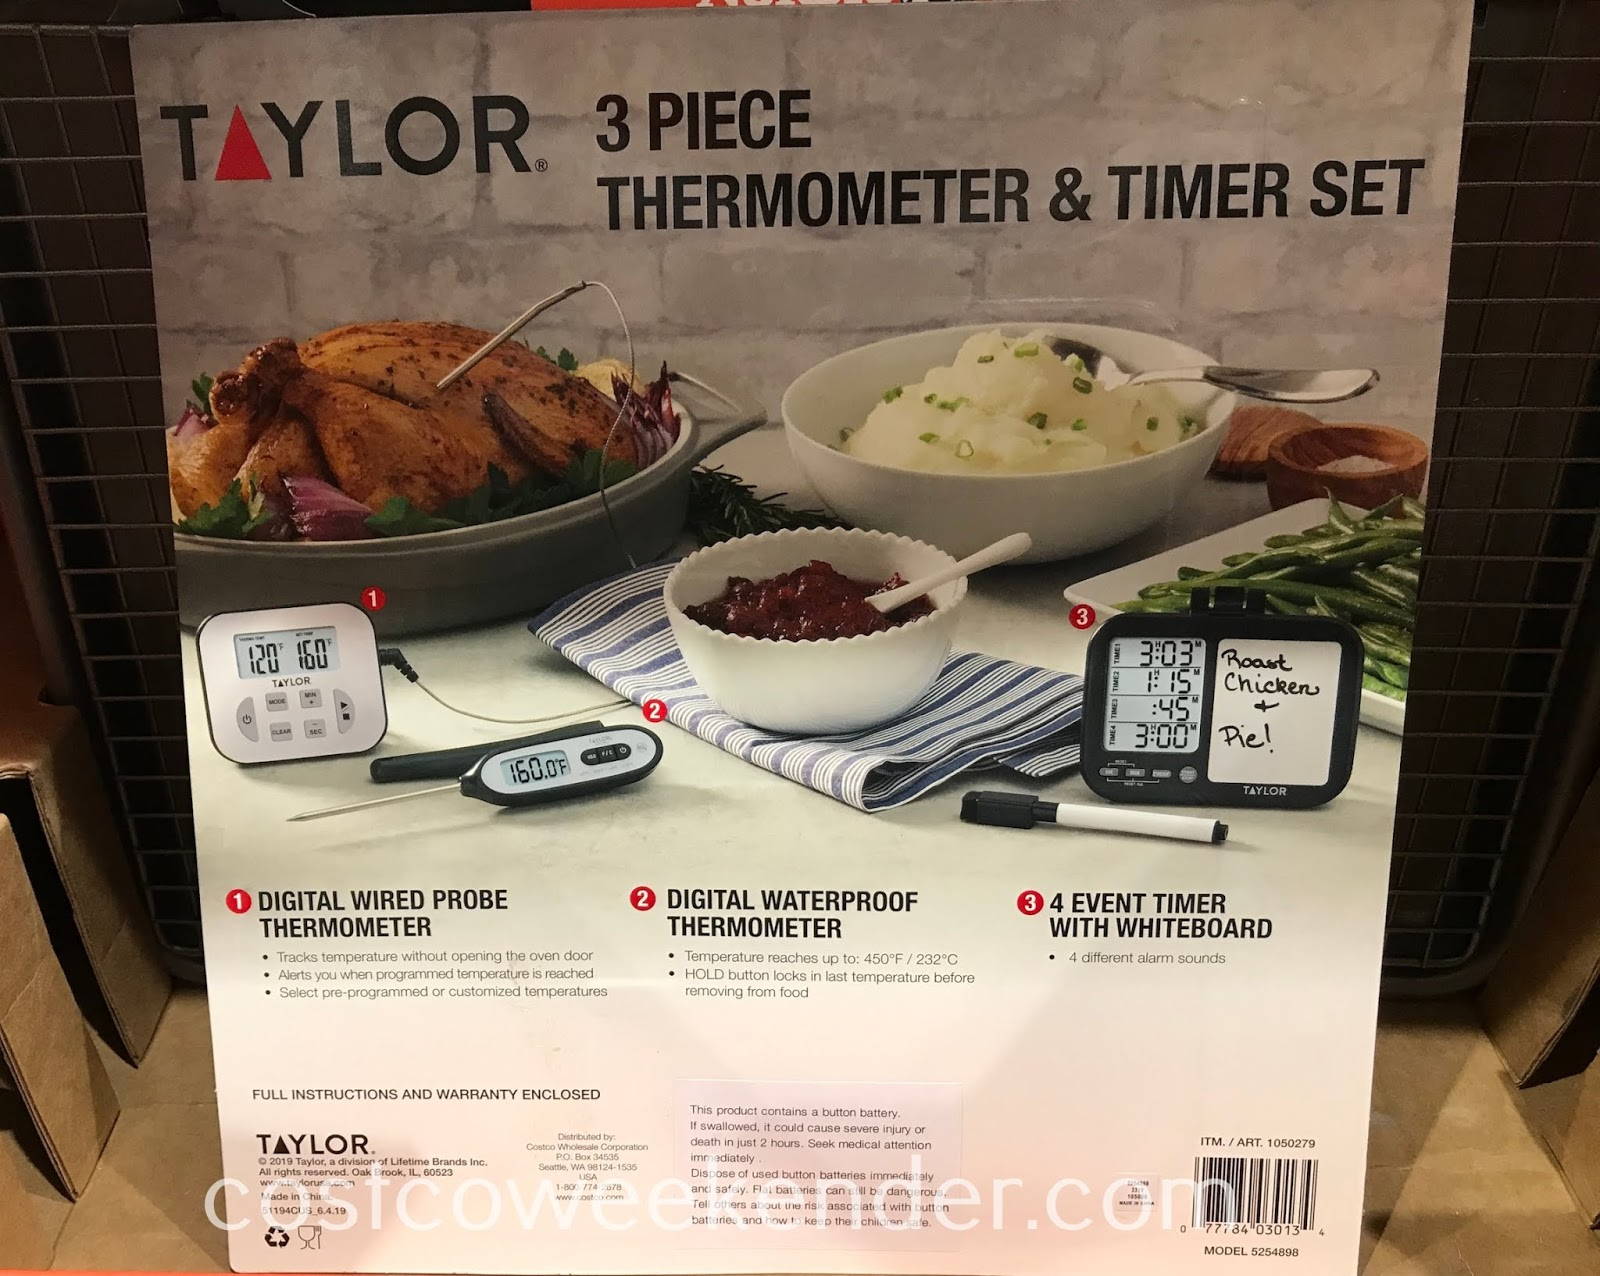 Costco 1050279 - Taylor 3-piece Thermometer and Timer Set: great for any home cook